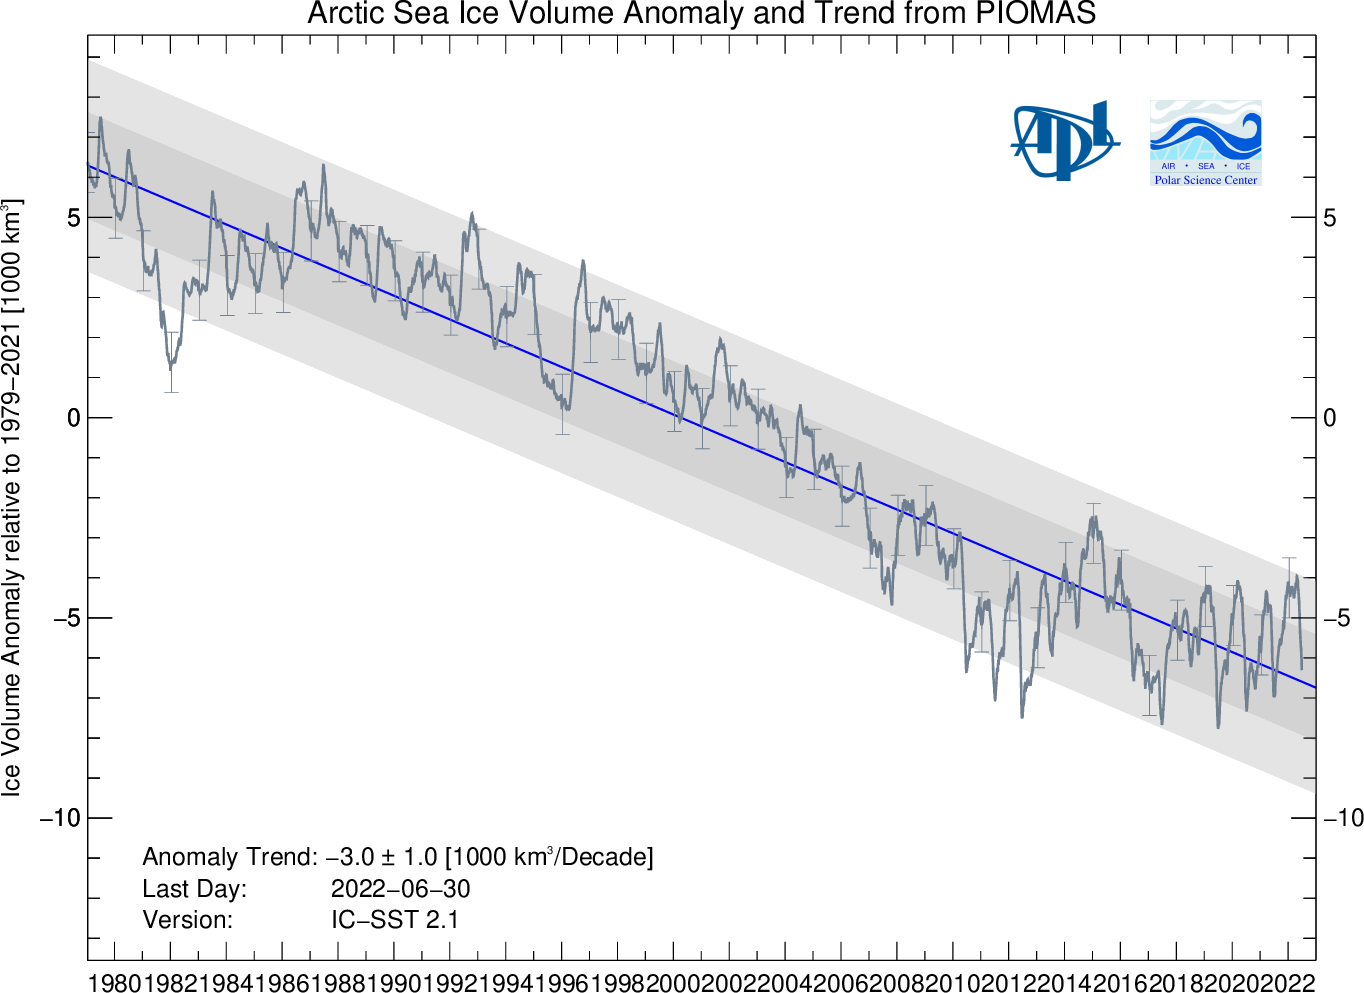 Arctic Sea Ice Volume